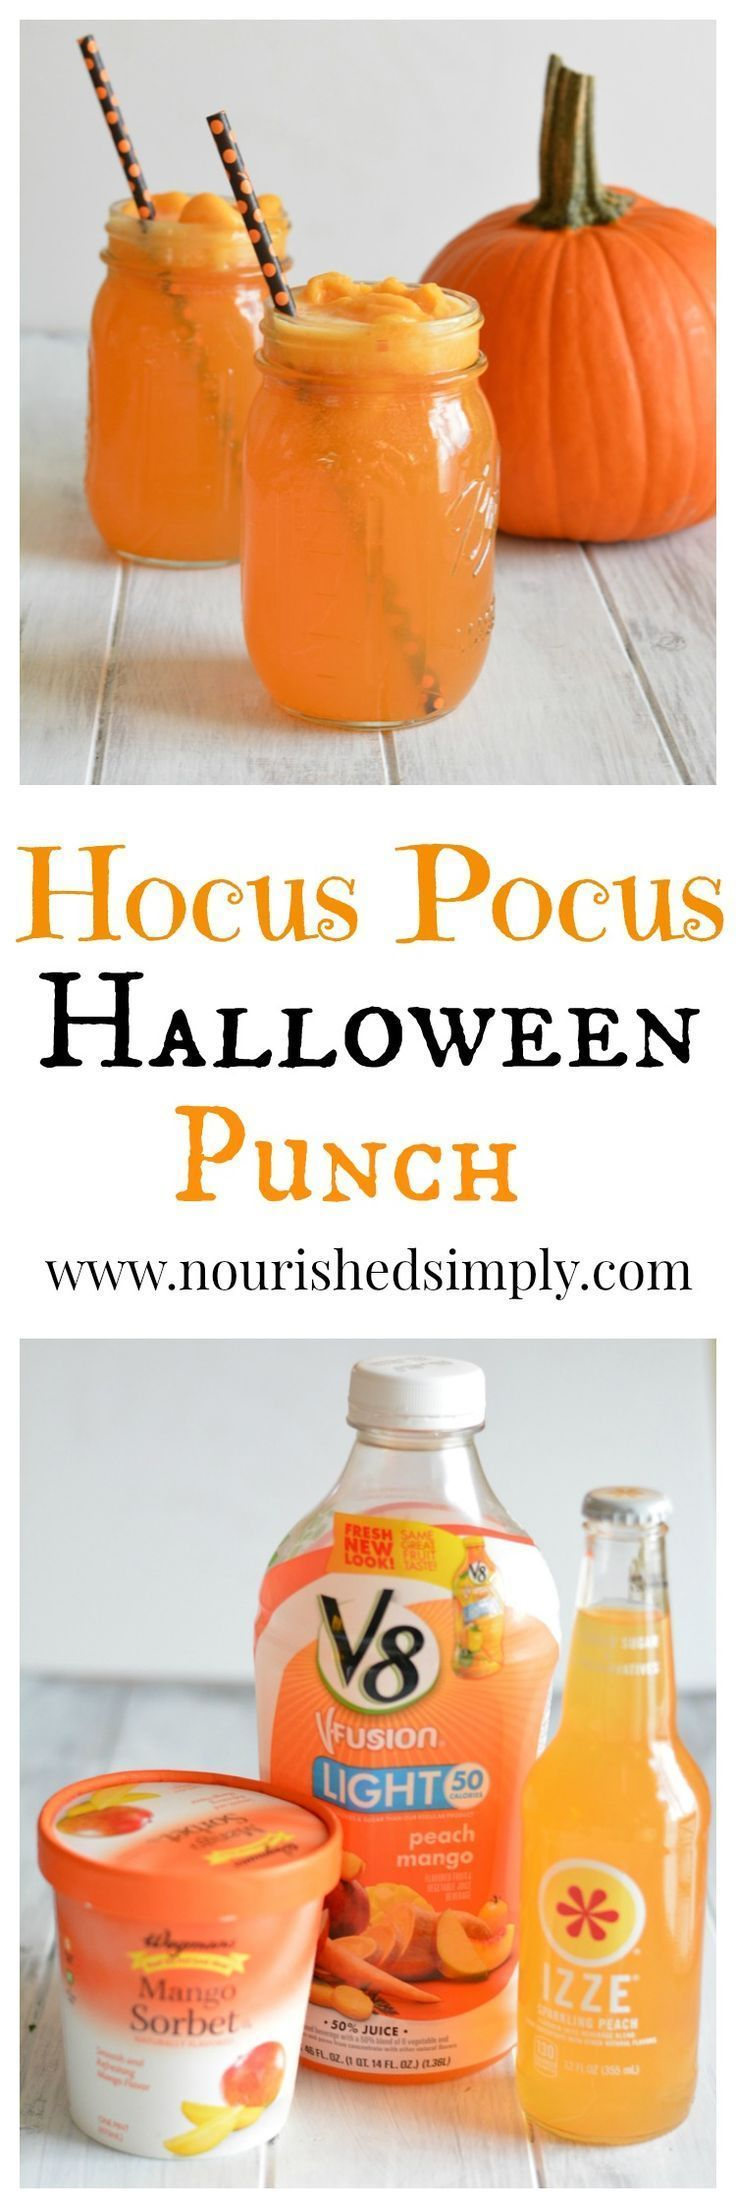 Hocus Pocus Halloween Punch   Recipe   Colors, Halloween and Punch